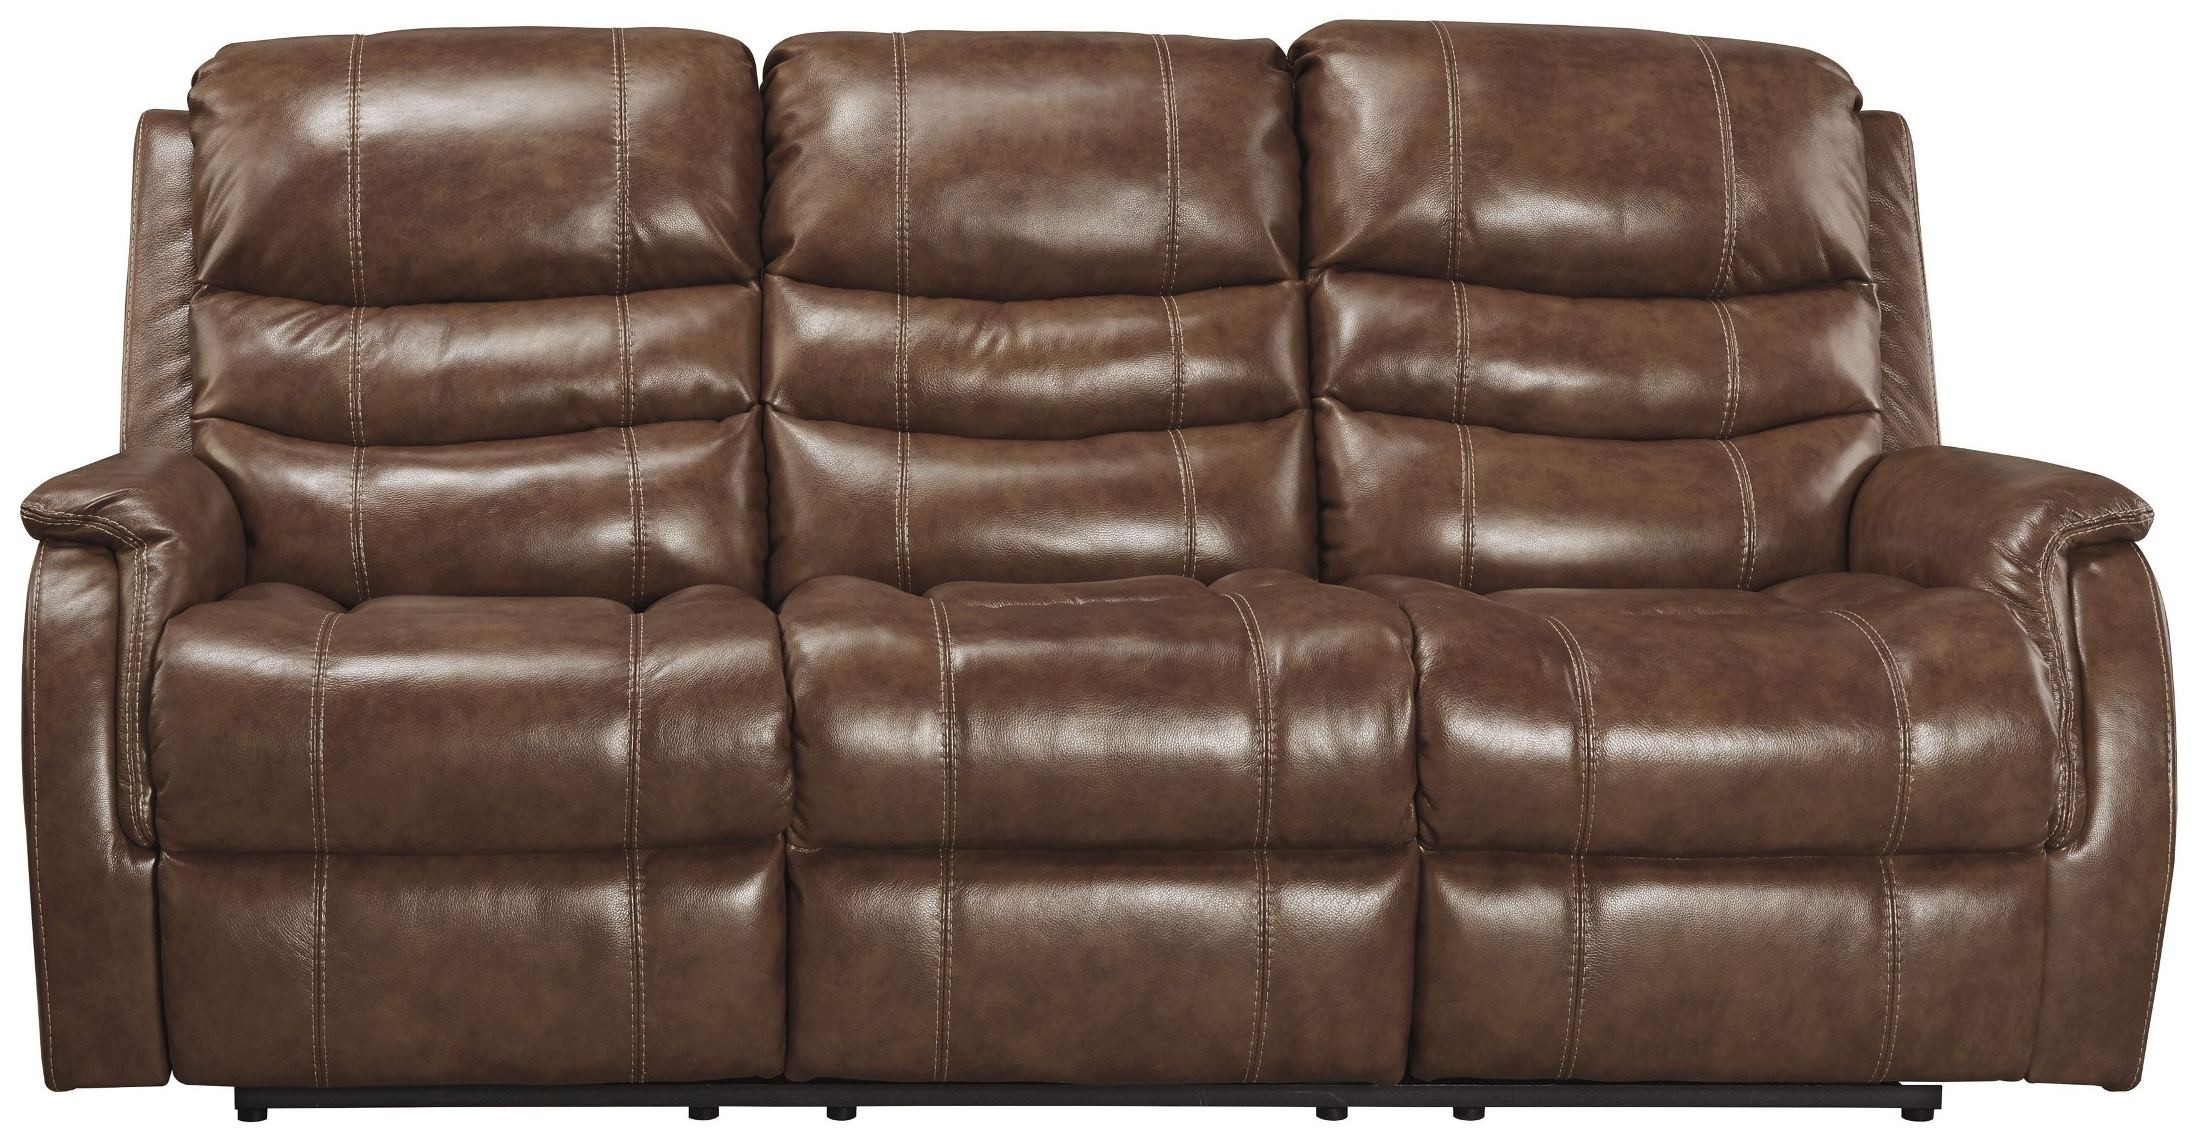 Metcalf Nutmeg Power Reclining Sofa from Ashley